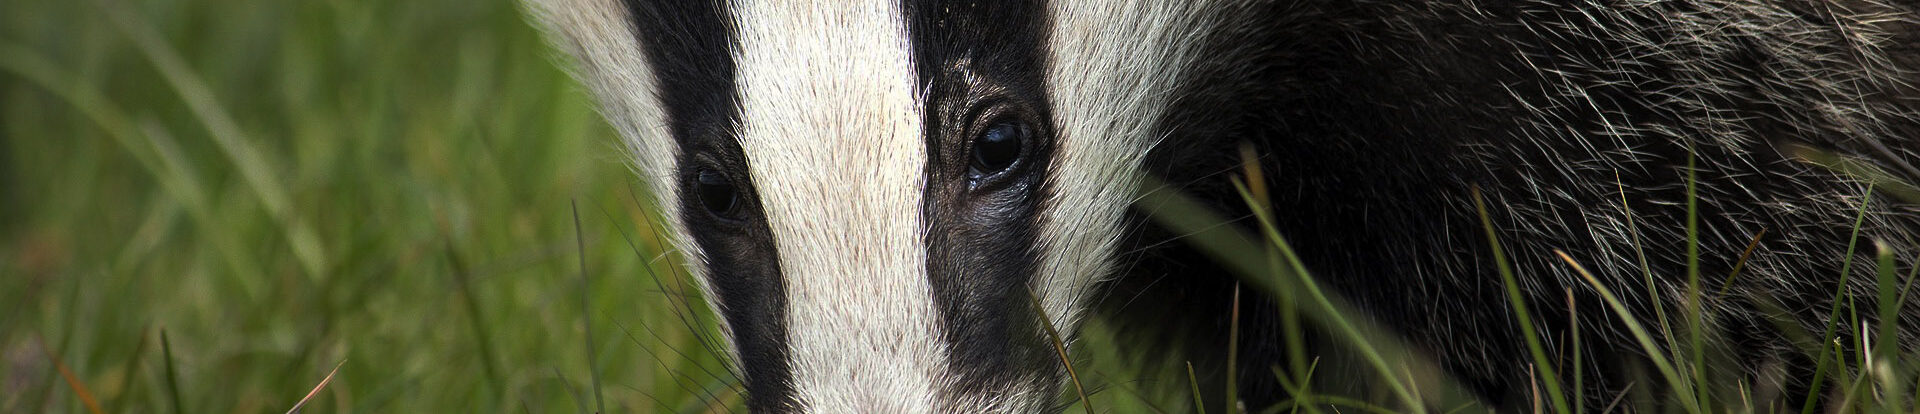 Badger Ecology Wales